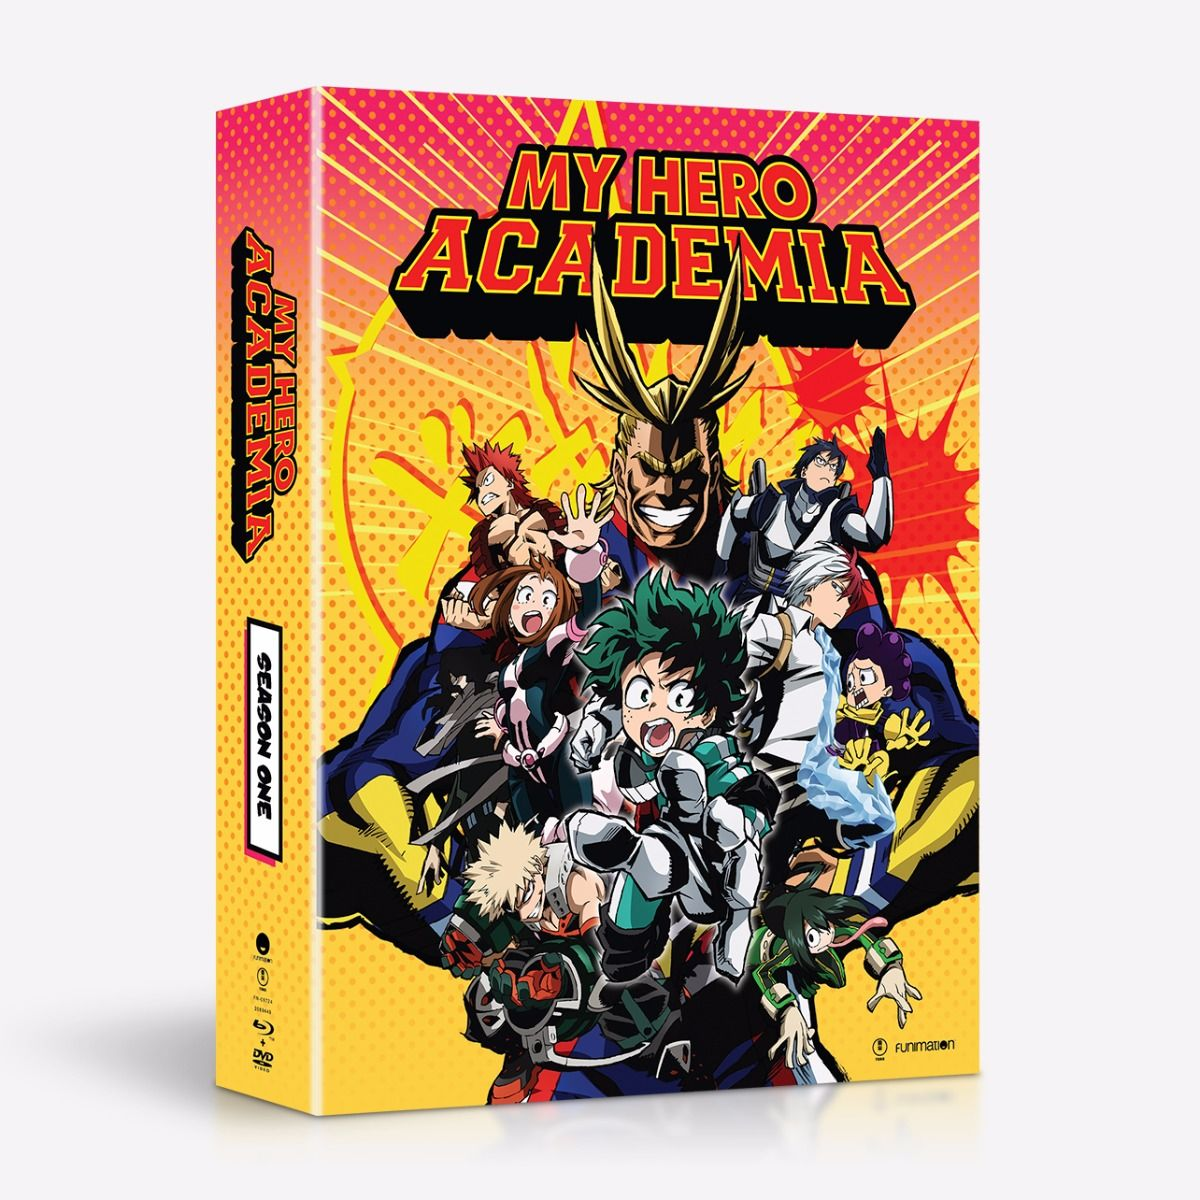 My Hero Academia Heroes: Funimation Store February, March, And April 2017 Blu-ray